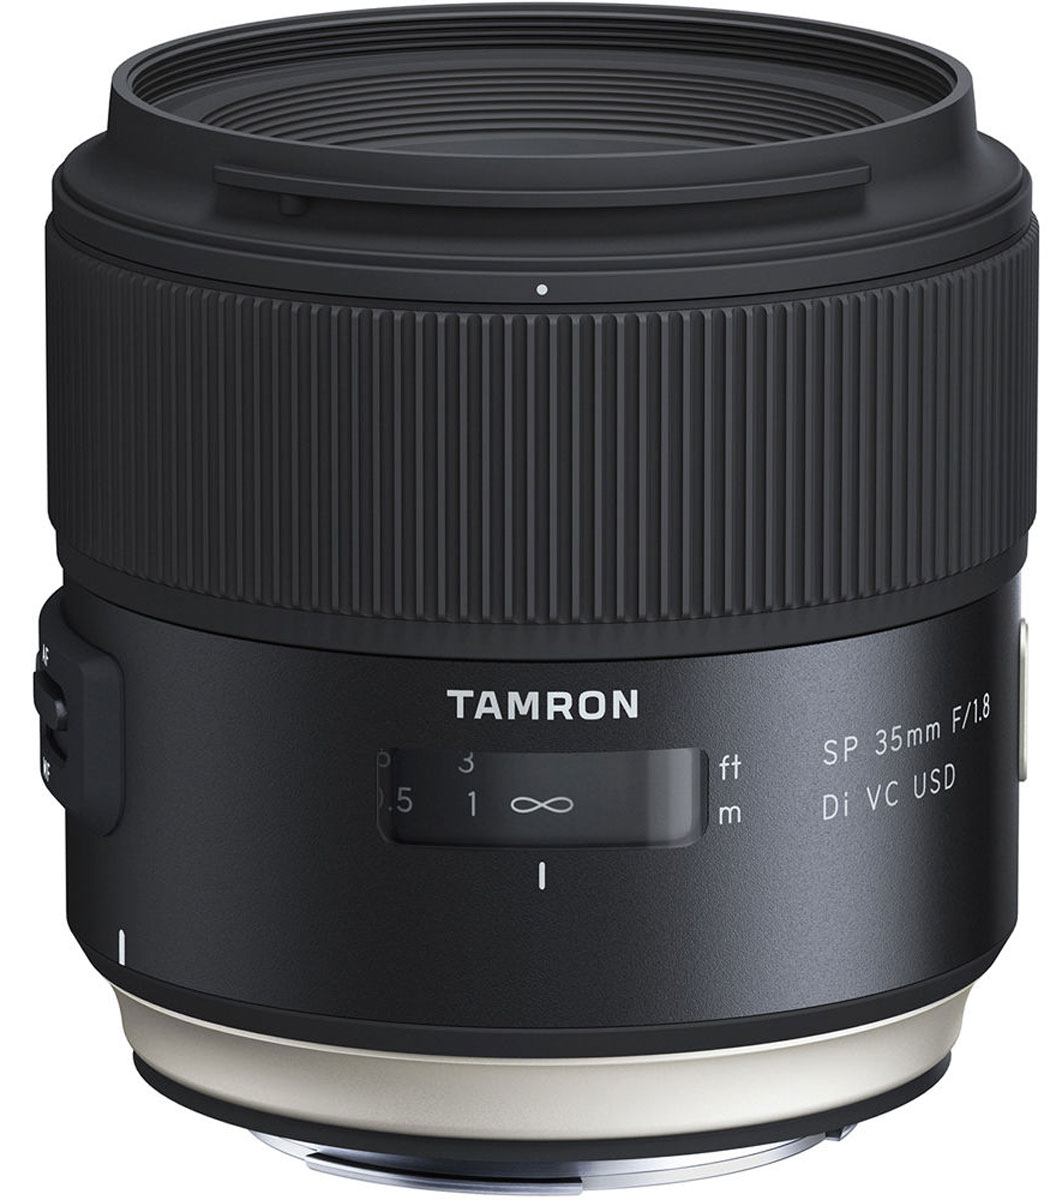 Tamron SP 35mm F/1.8 DI VC USD, Black объектив для Canon